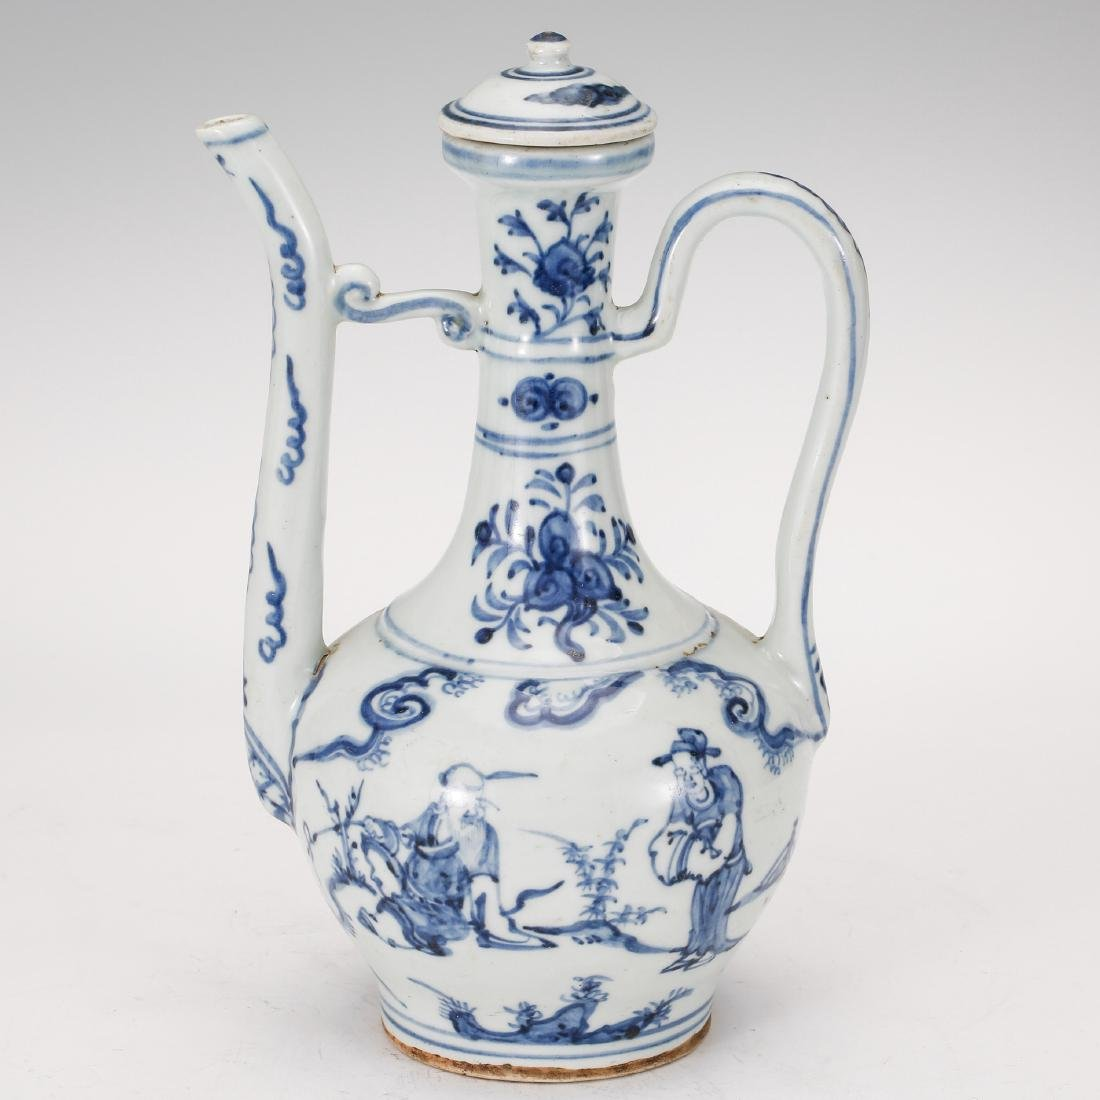 CHINESE BLUE AND WHITE PORCELAIN WINE EWER